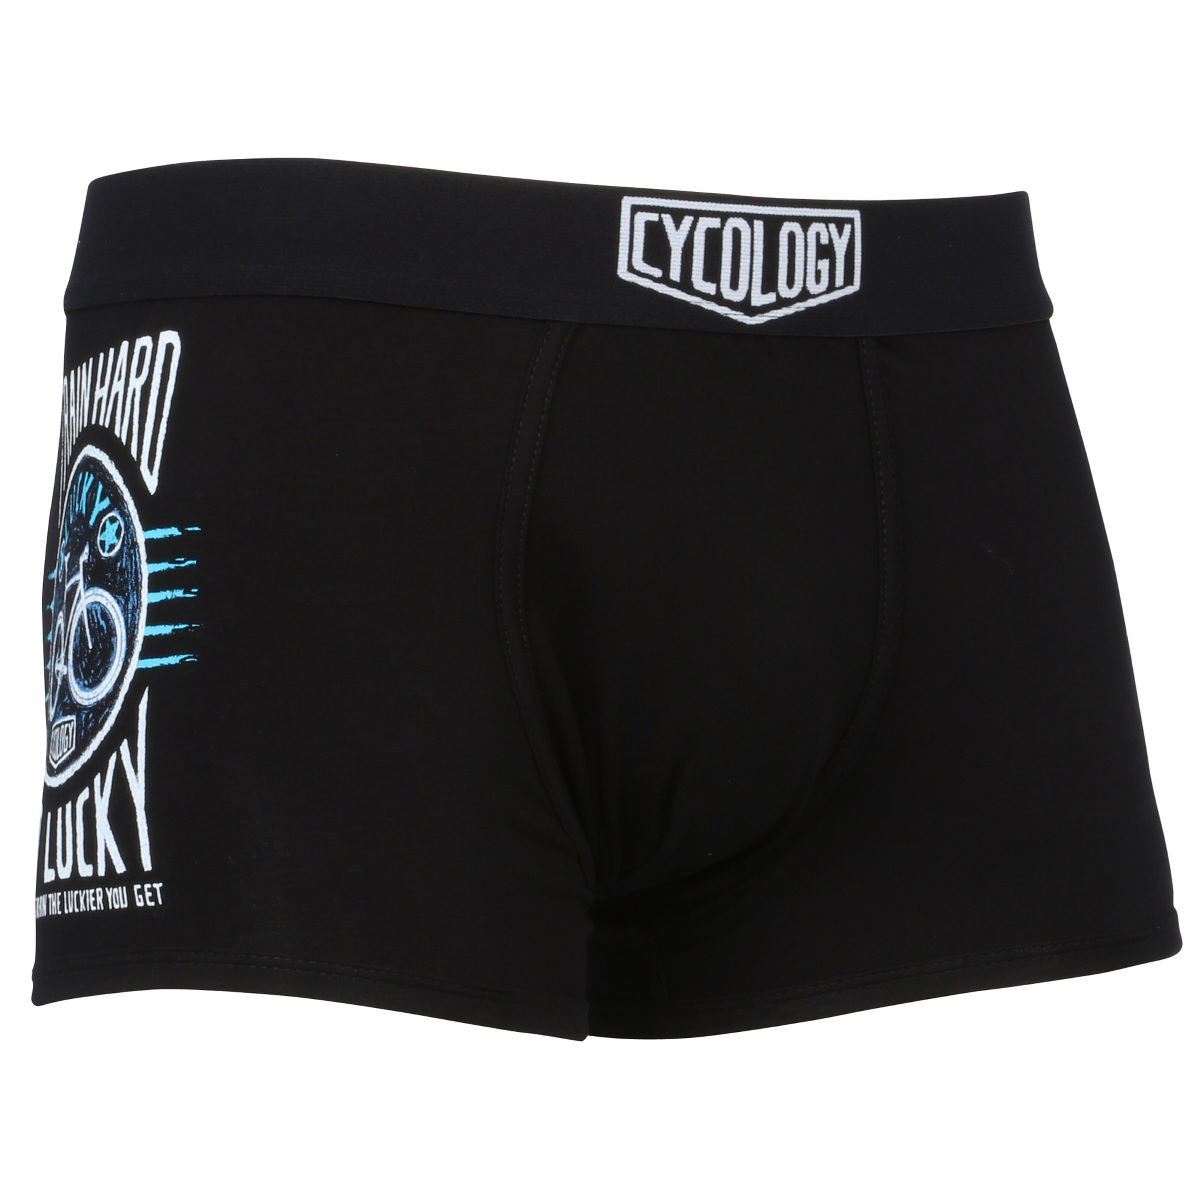 Calzoncillo bóxer Cycology Train Hard Get Lucky - Ropa interior informal